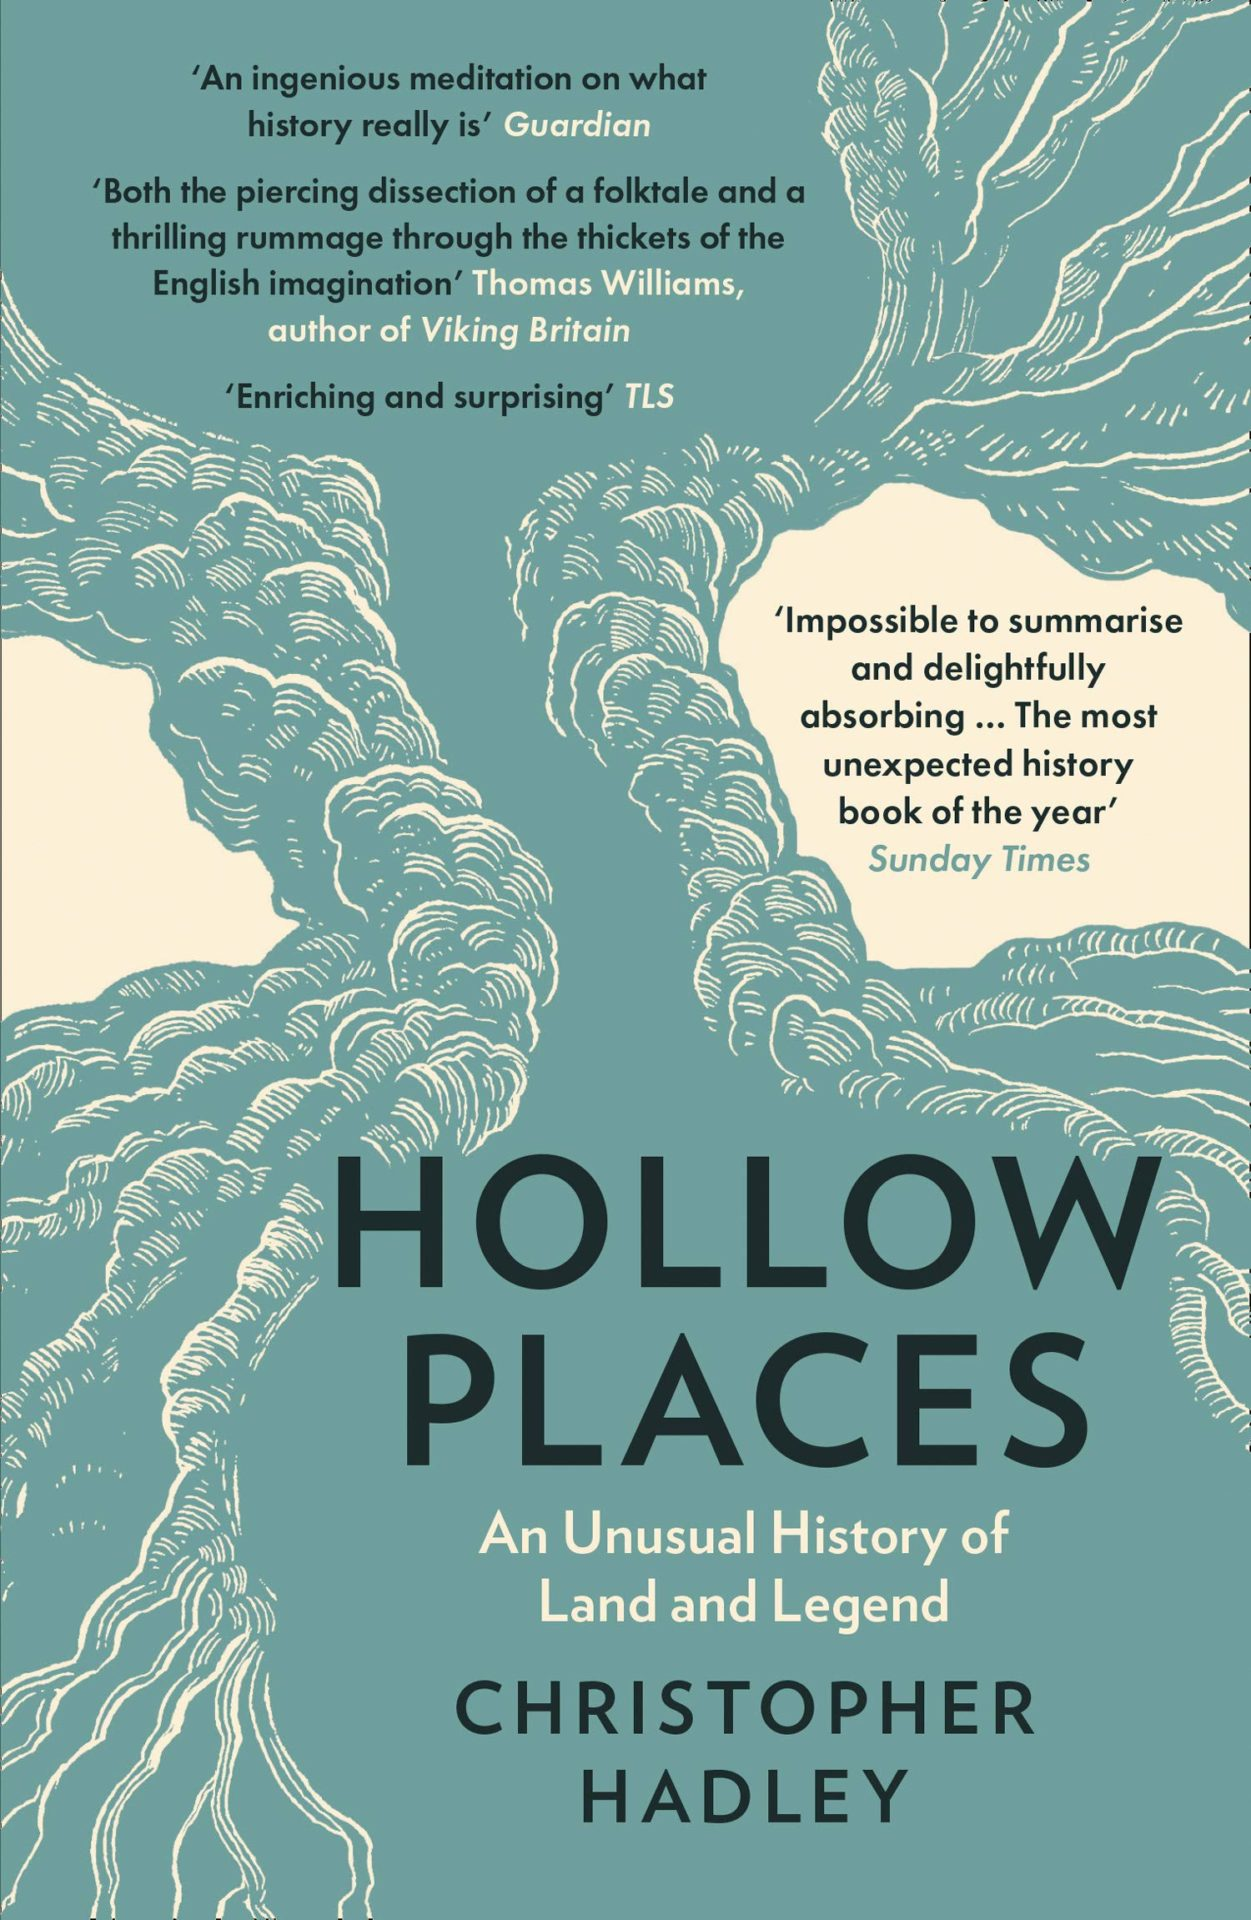 Hollow Places: An Unusual History of Land and Legend by Christopher Hadley | 9780008319526